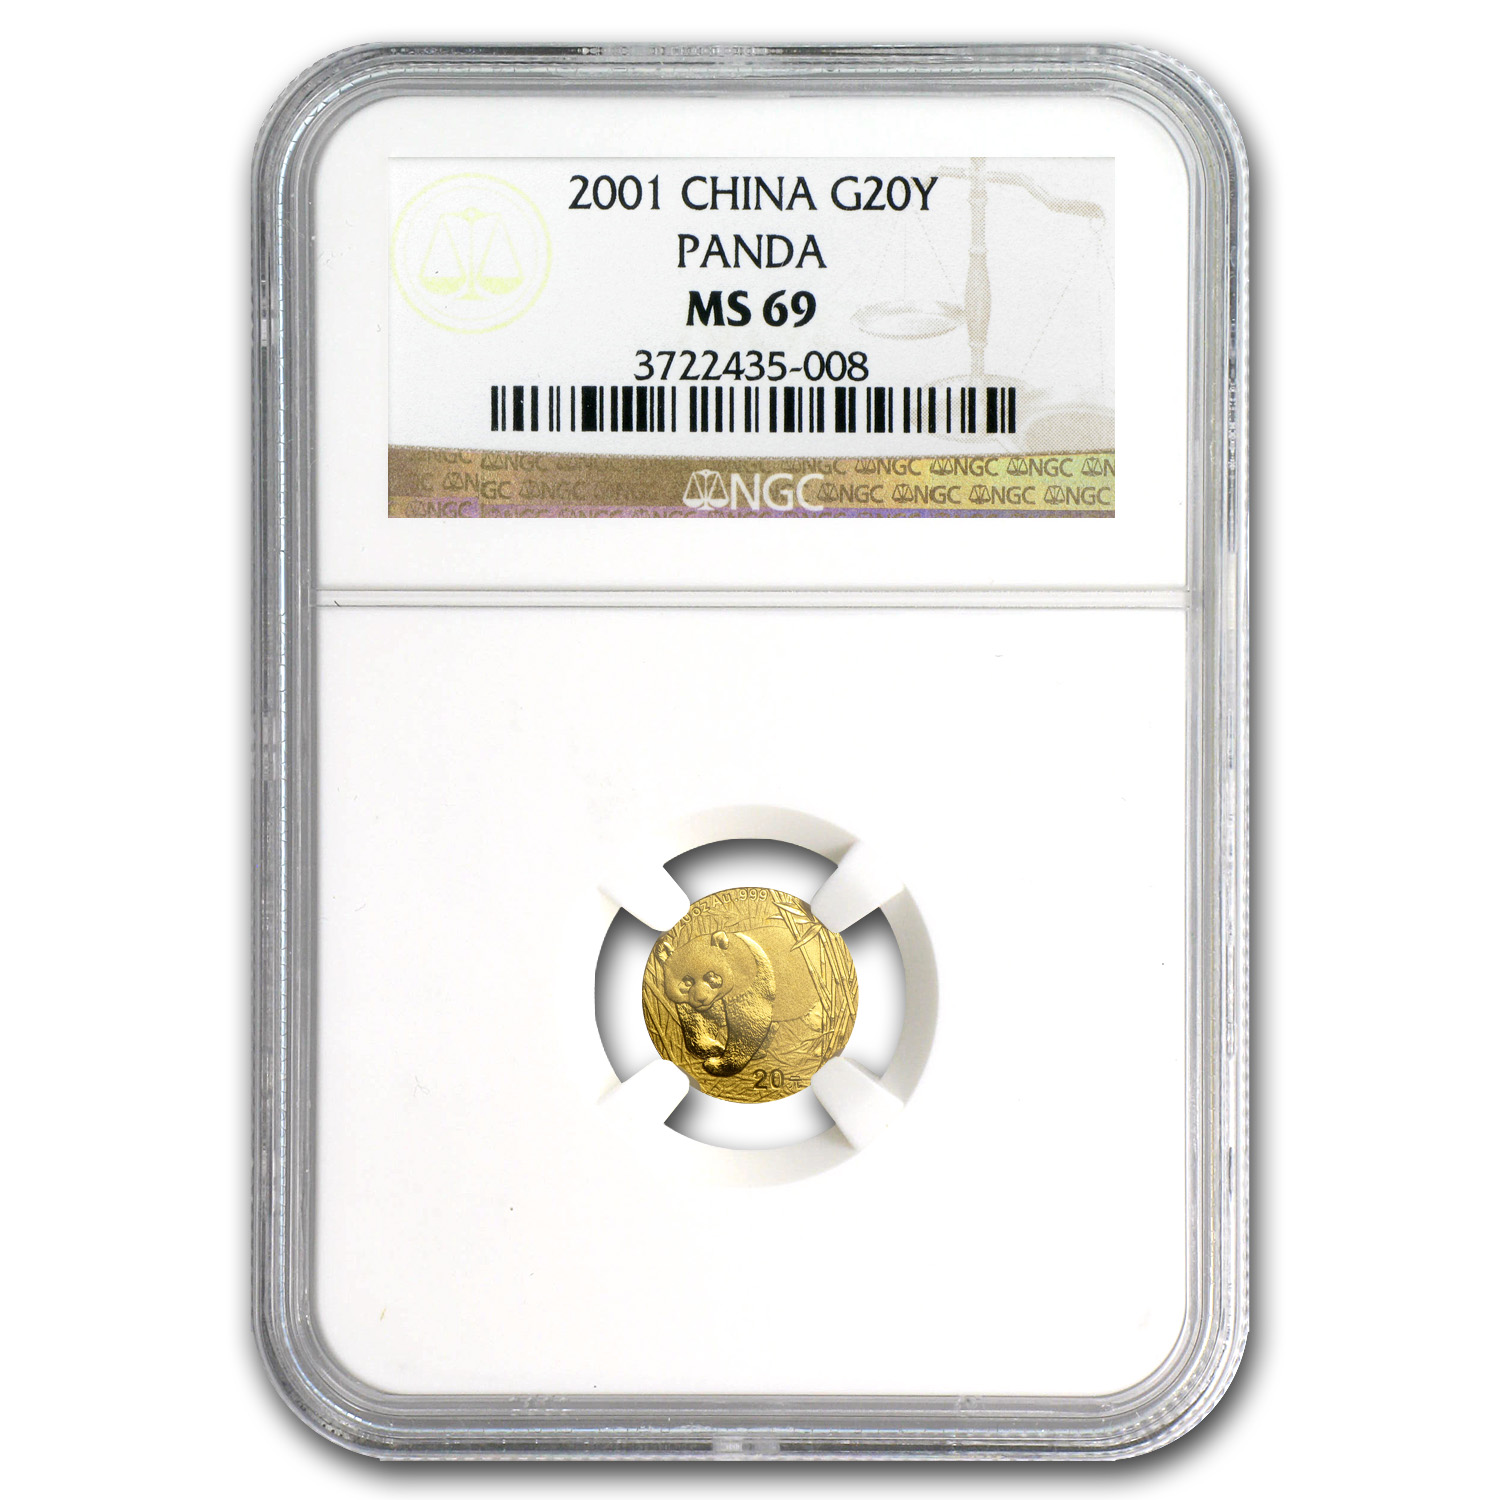 2001 China 1/20 oz Gold Panda MS-69 NGC